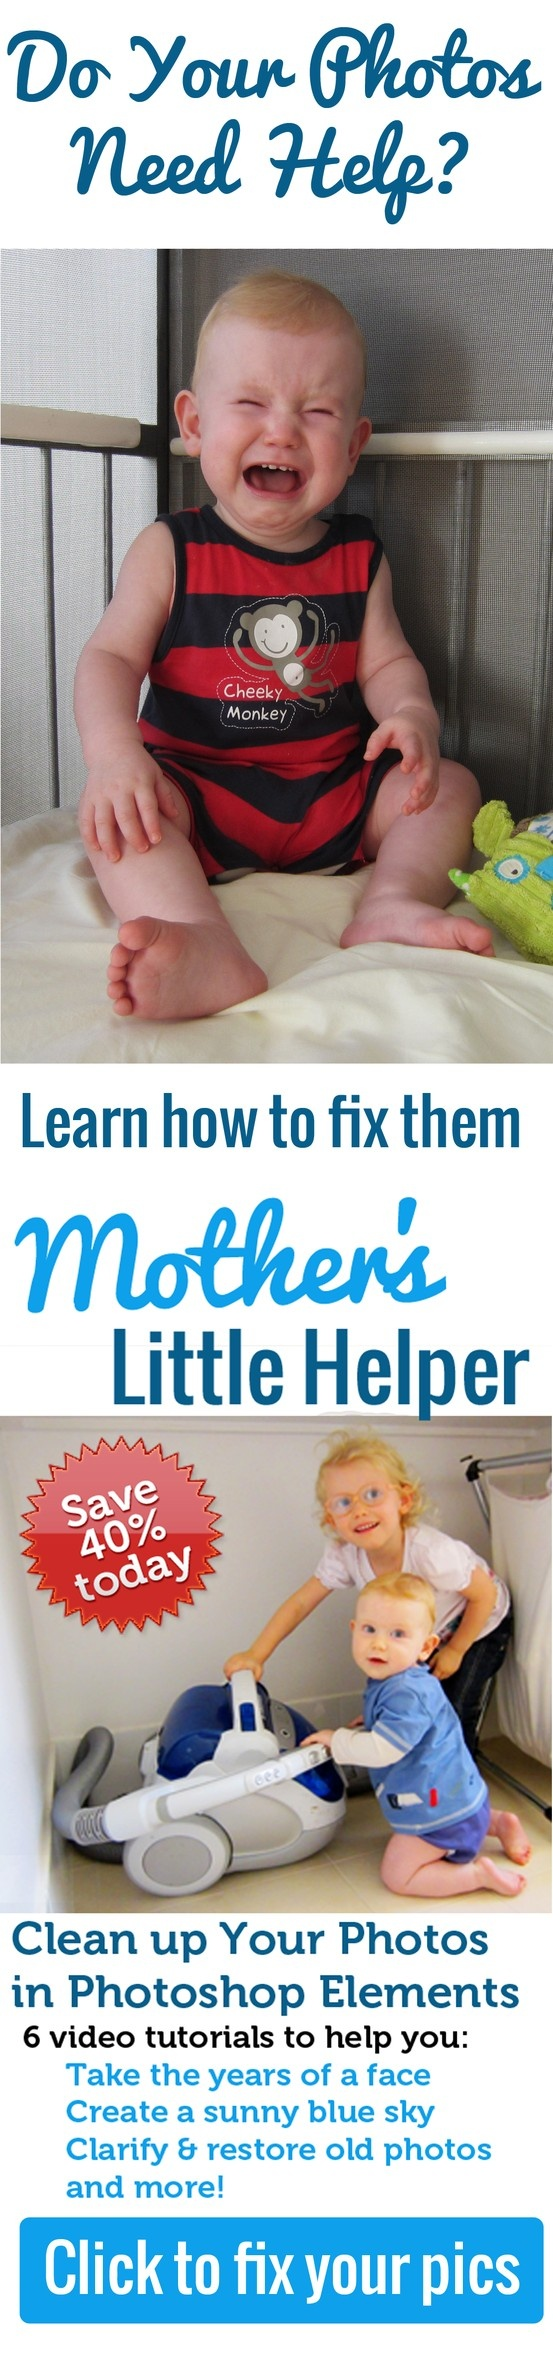 Just $17 to learn 6 Photo Fixes to get your photo needing help http://www.digitalscrapbookinghq.com/mothers-helper/